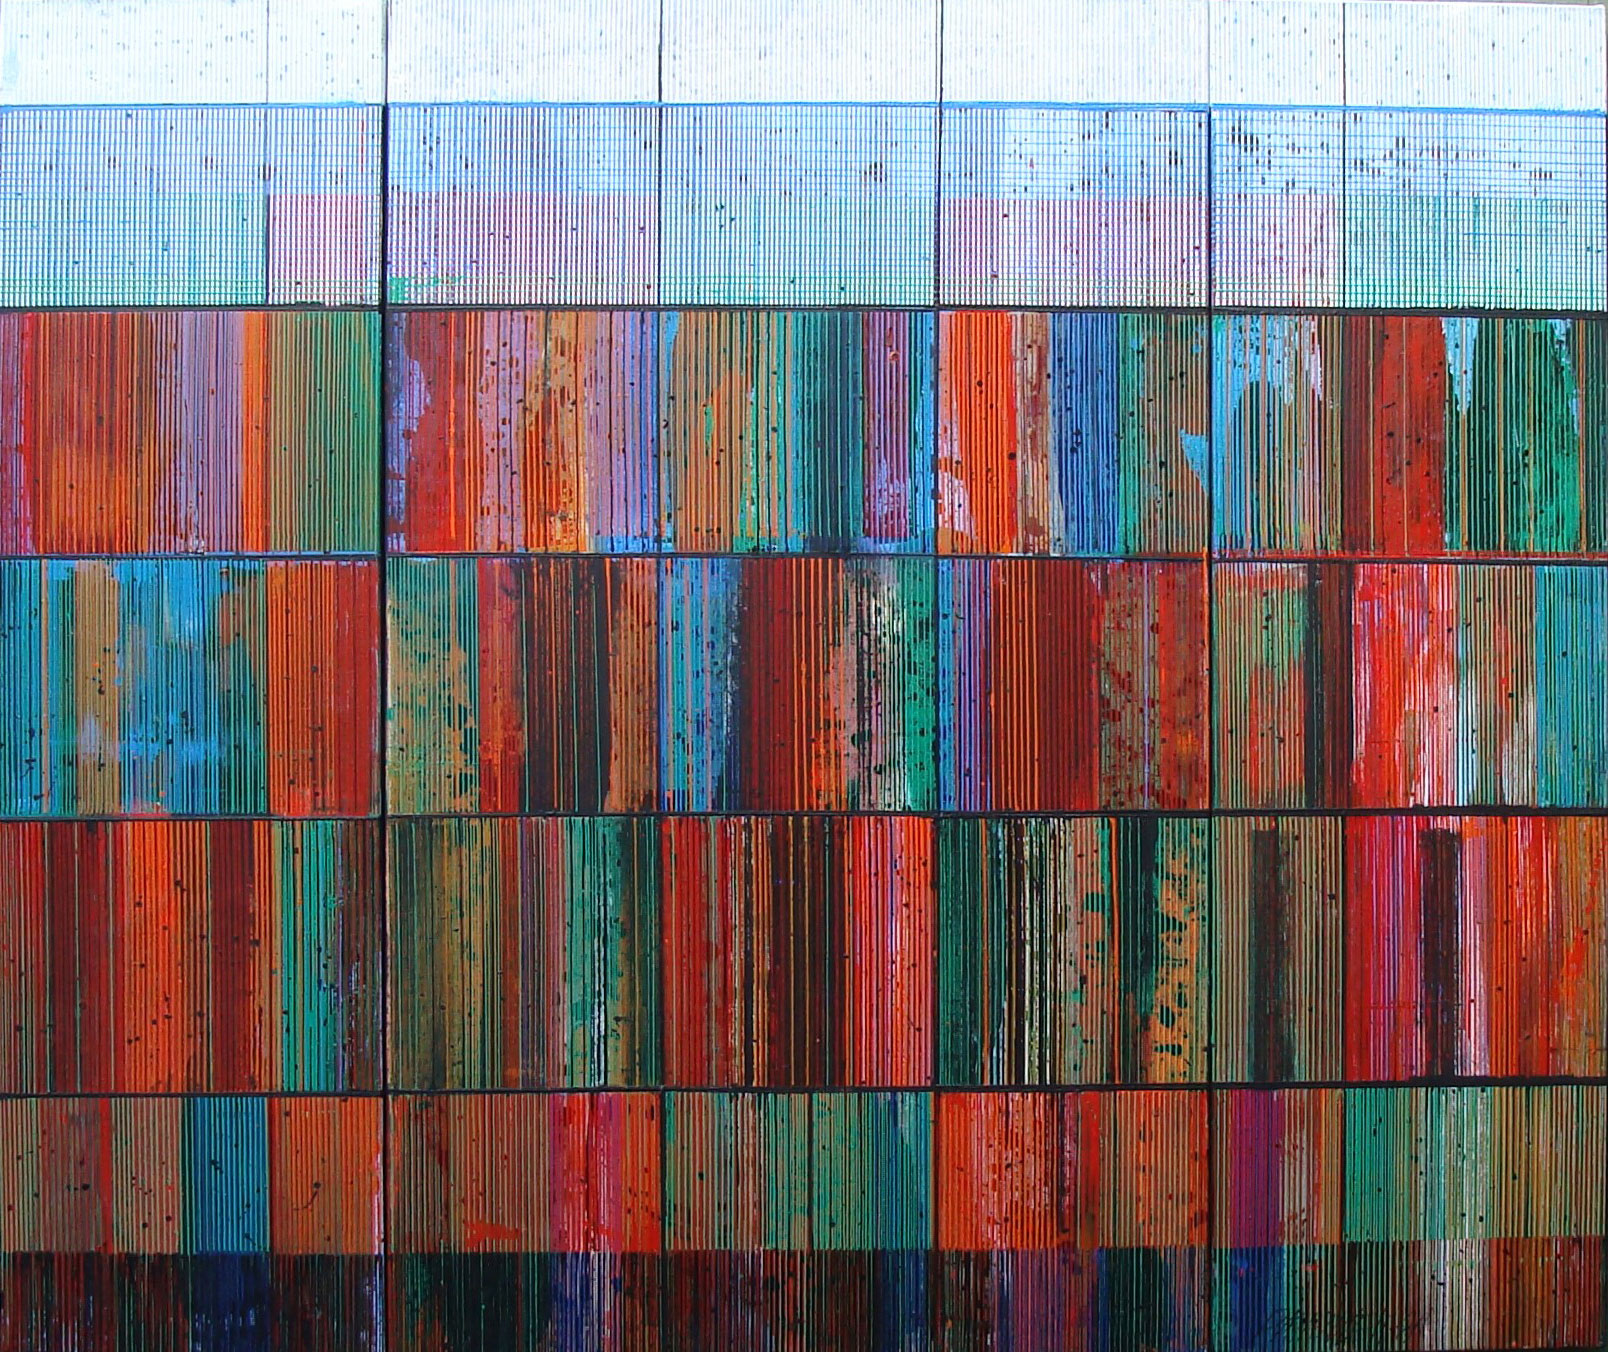 Bands Grids Striations Pixels Other Markings 1984 5x6